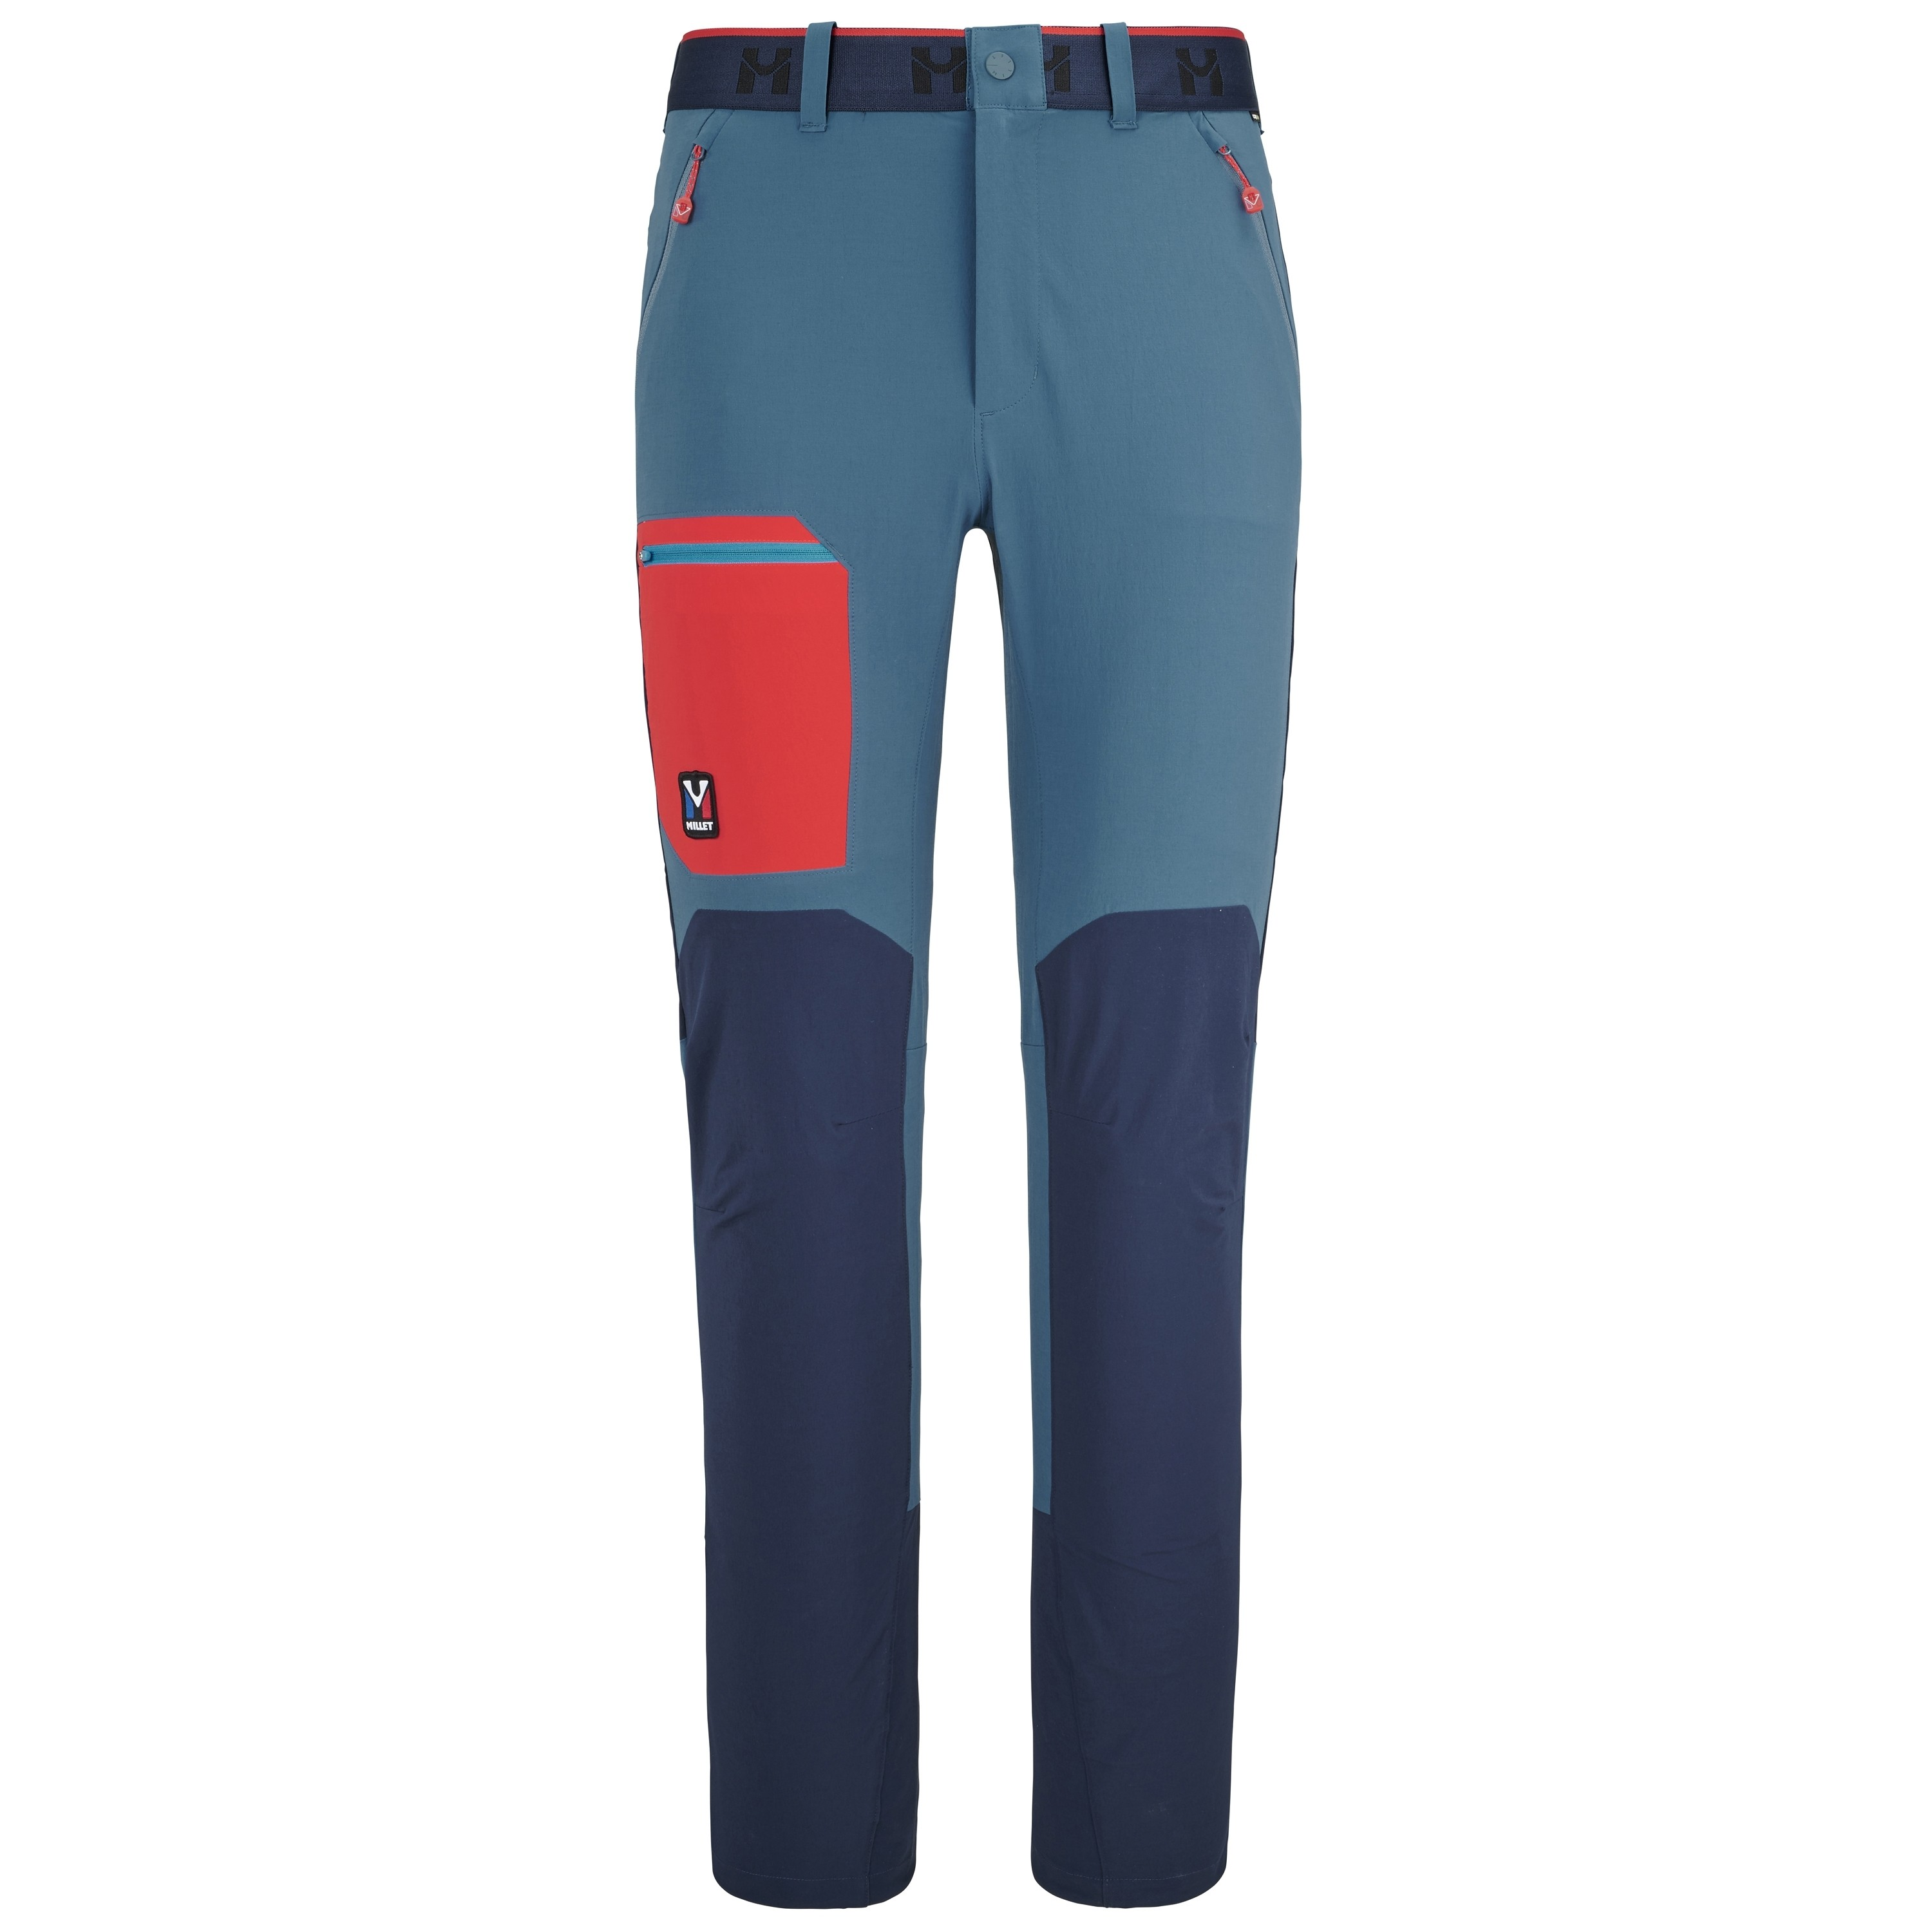 TRILOGY ONE CORDURA PANT M